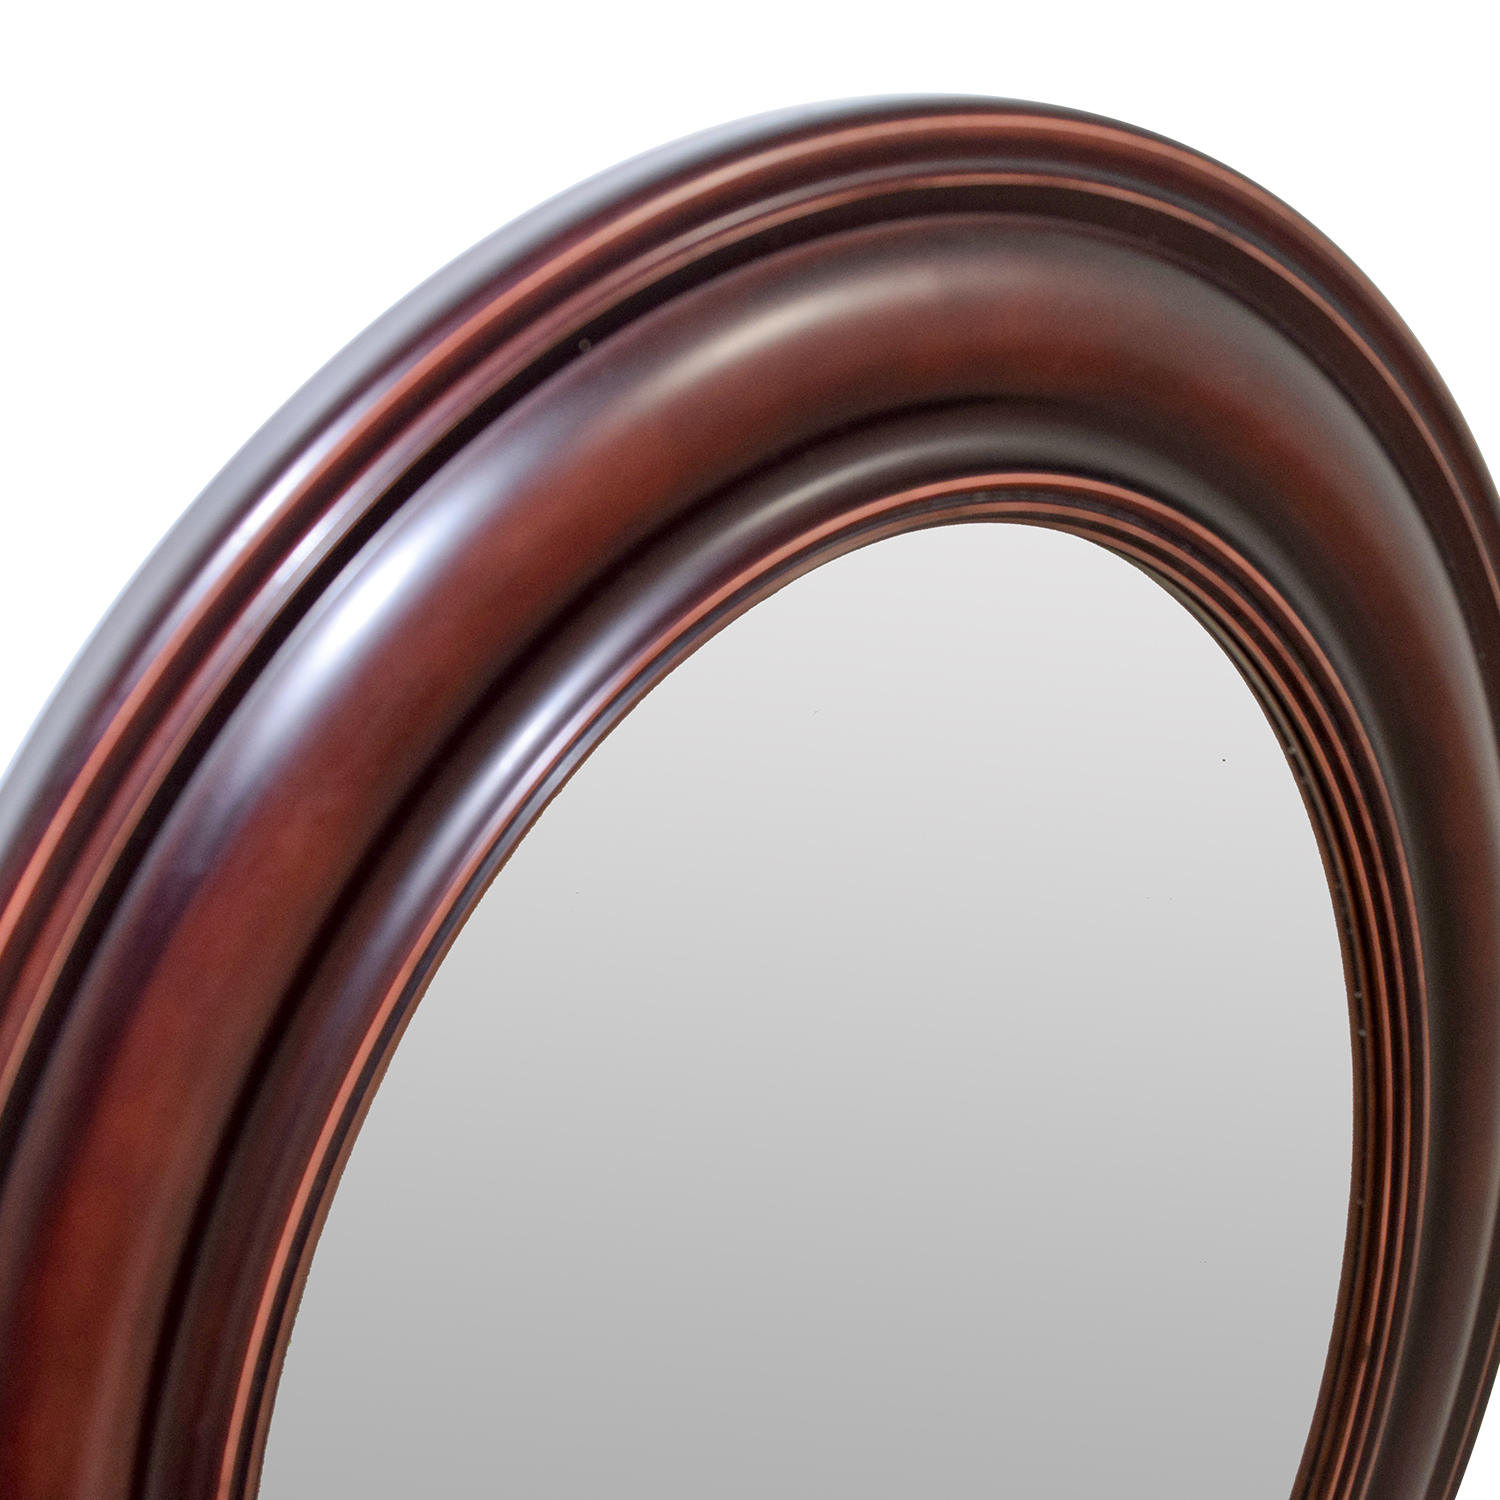 OFF Pottery Barn Pottery Barn Oval Mirror Decor